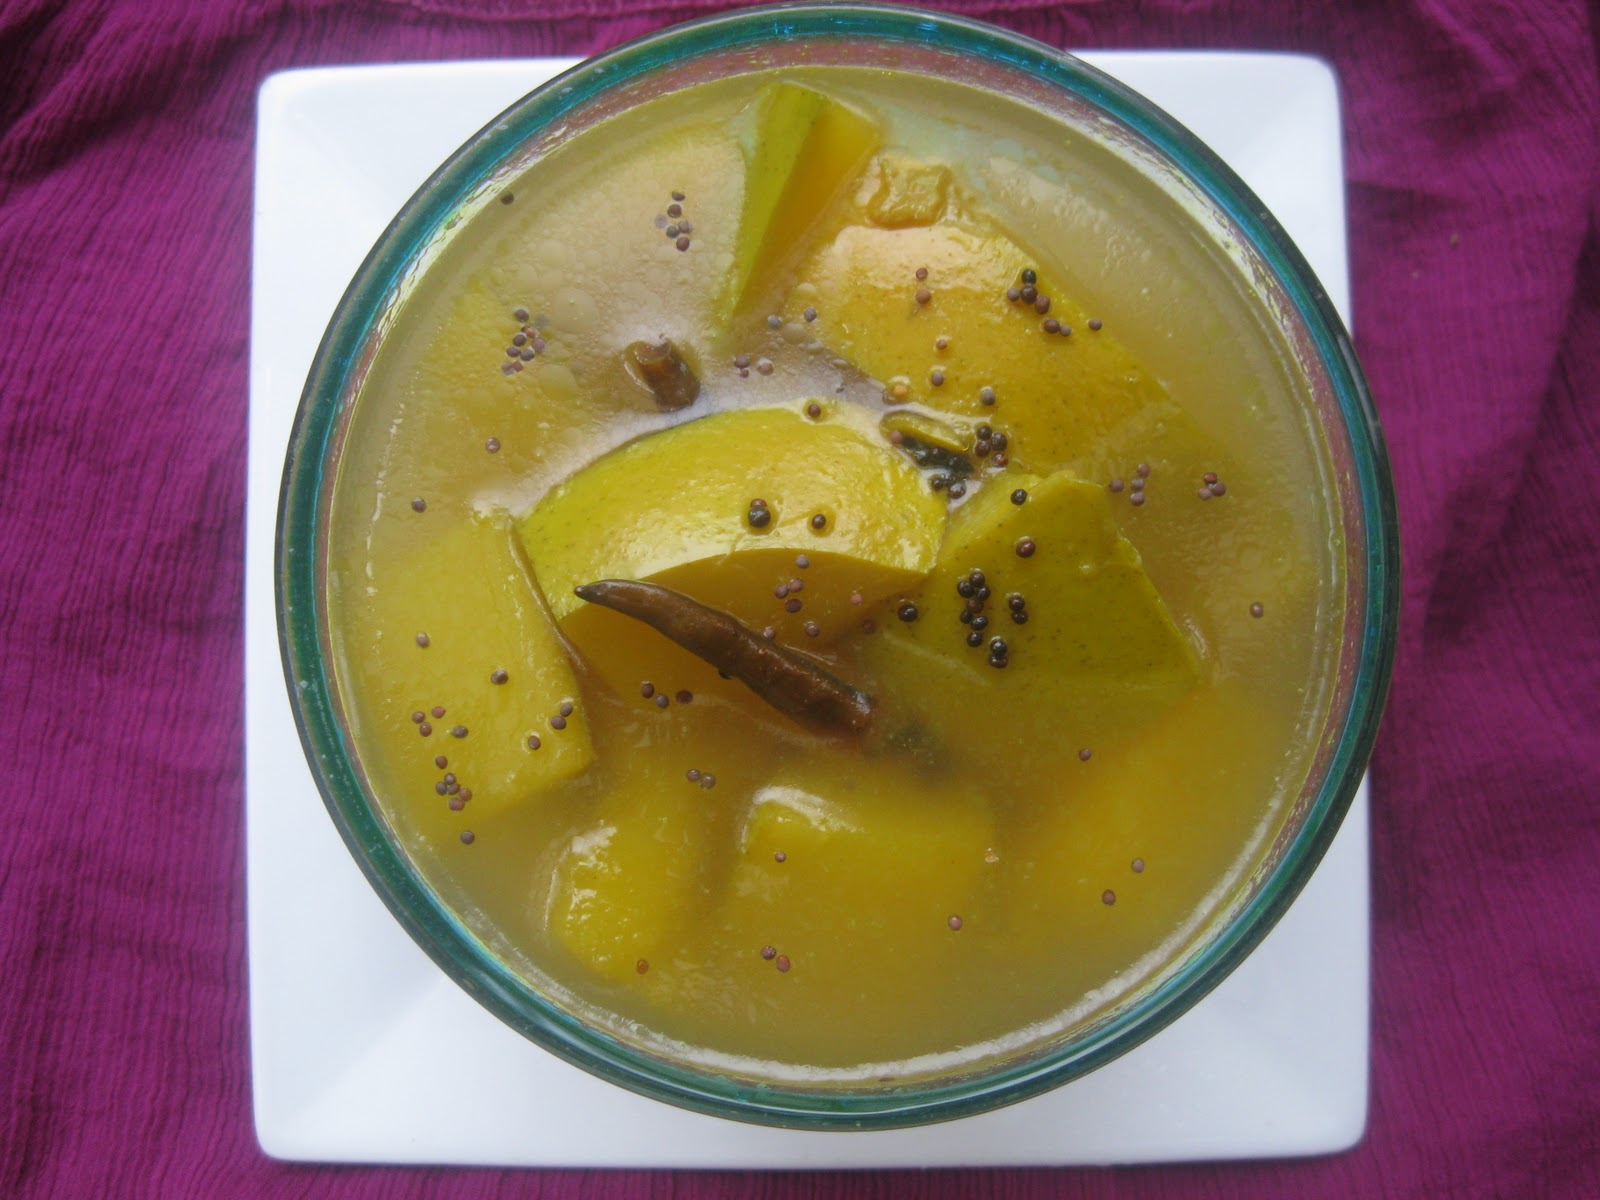 ... begin with the chilled soup: Aamer Ombol – Chilled Green Mango Soup